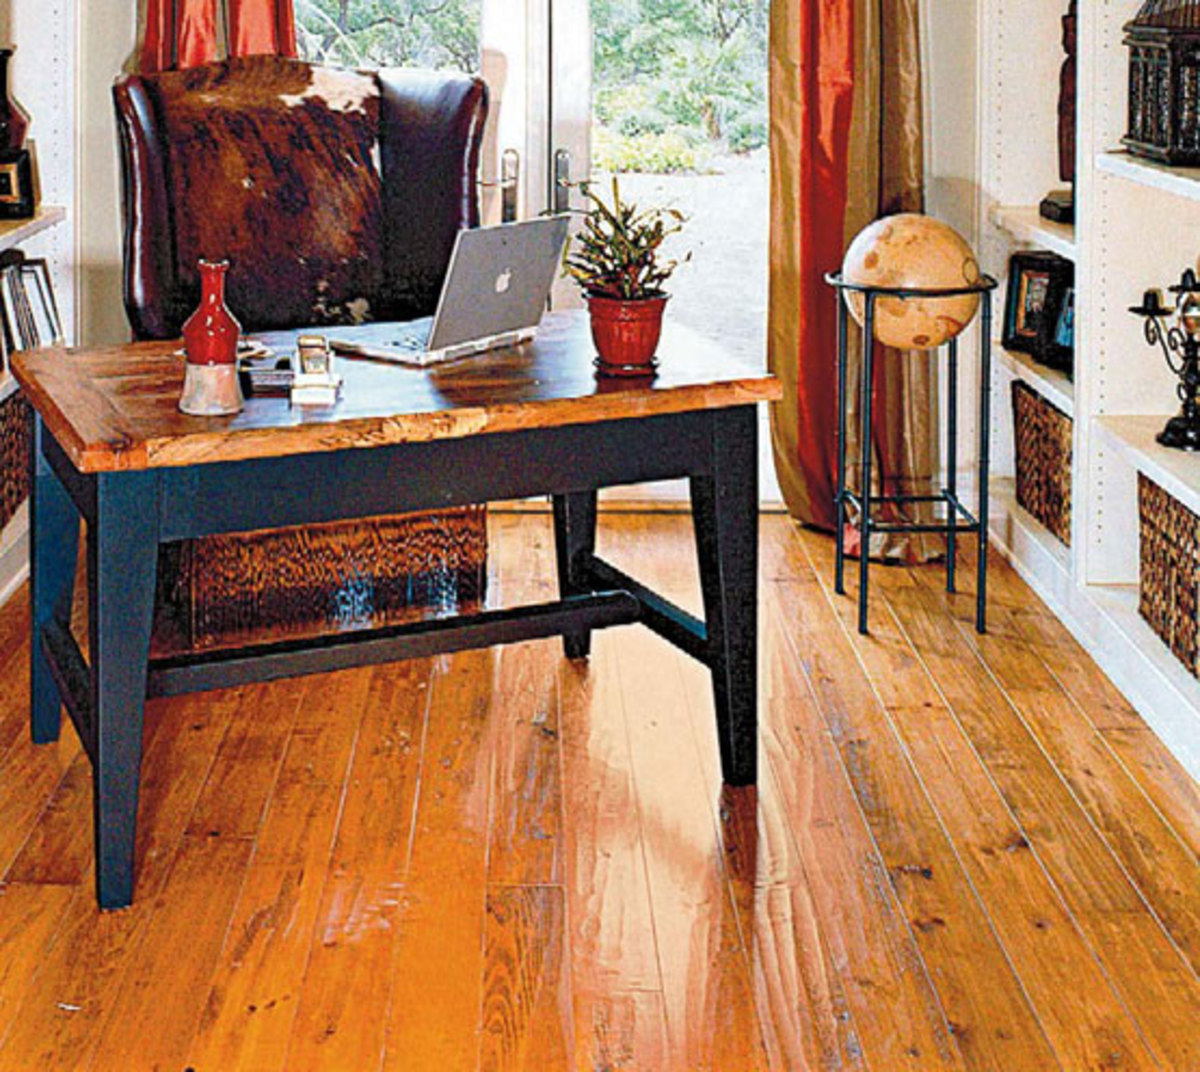 An antique heart-pine floor from Authentic Pine Floors.